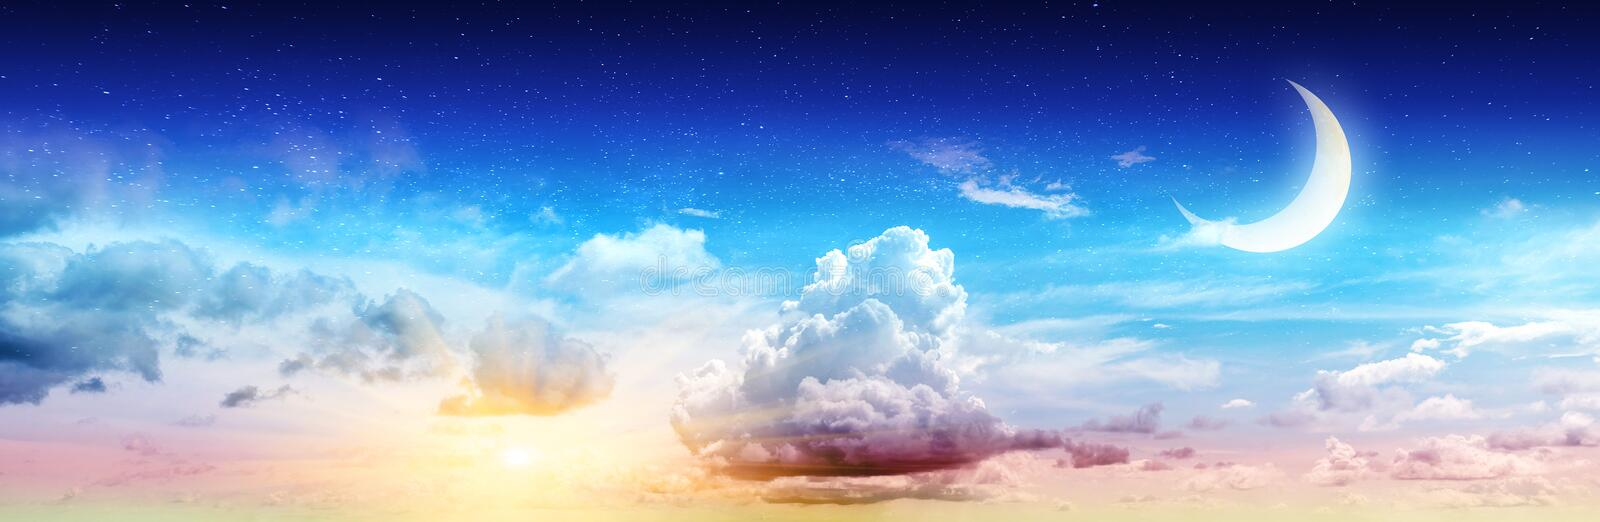 Art summer sky night moon and stars stock images